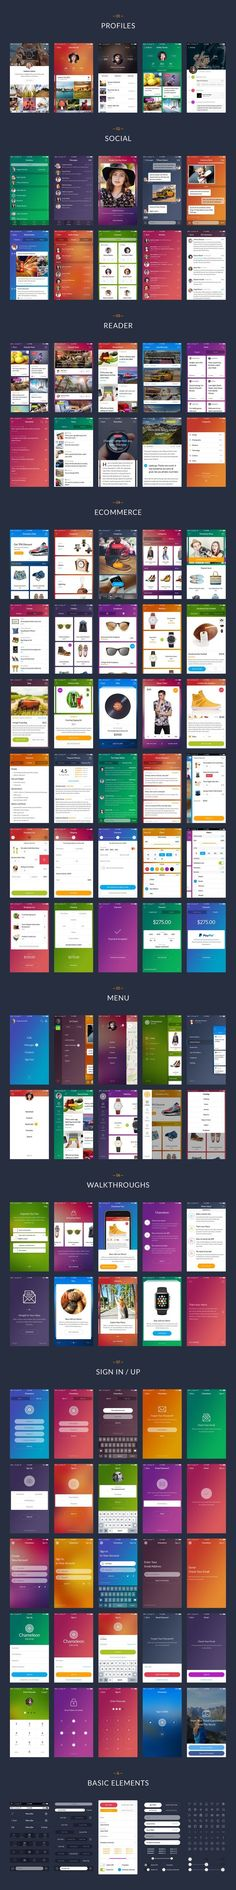 Chameleon is a modern mobile UI kit for Sketch and Photoshop.       #paymentsview #financeapp #creditcardview #debitcardview #login #listview #signupview #notifications#sidemenu#flatui#allui#greatfonts#greatcolors With 100 beautiful screens in 7 categories, 15 unique themes, 60+ icons and hundreds of neatly organized components you can easily create design for your mobile app.. If you like UX, design, or design thinking, check out theuxblog.com